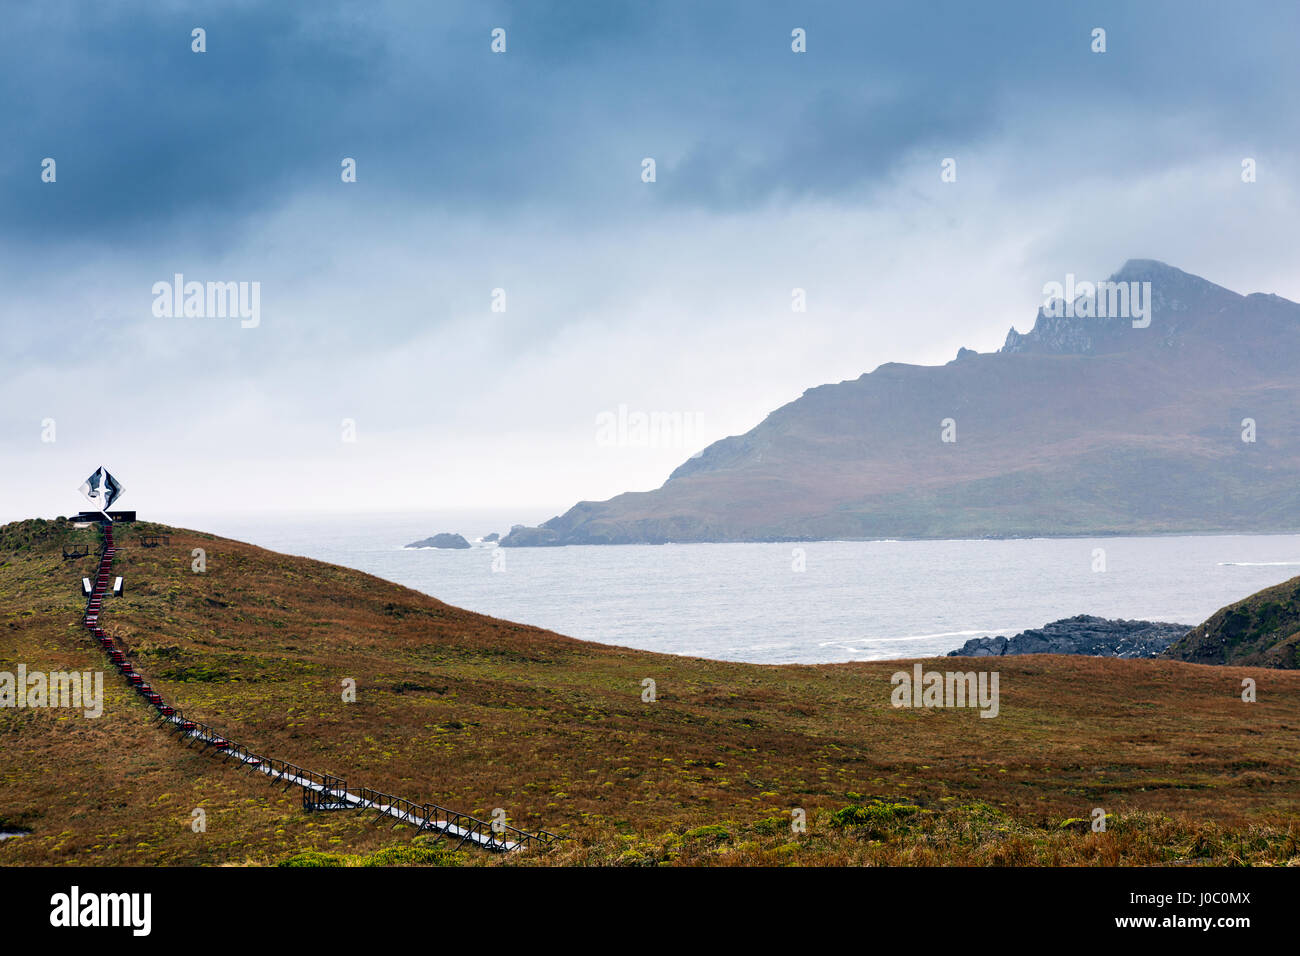 Cape Horn at the far southern end of South America, in the islands of Cape Horn National Park, Patagonia, Chile - Stock Image